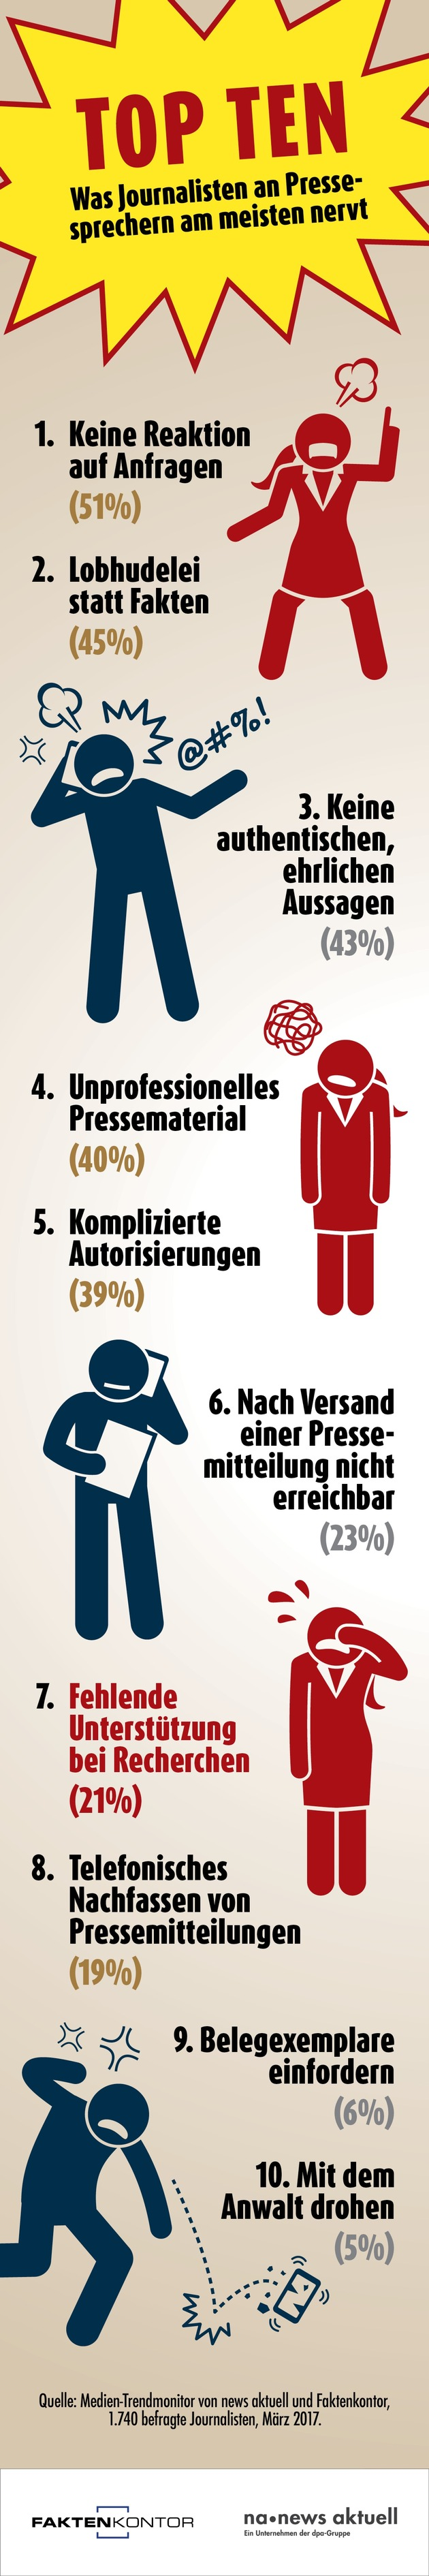 Top Ten: Was Journalisten an Pressesprechern am meisten nervt